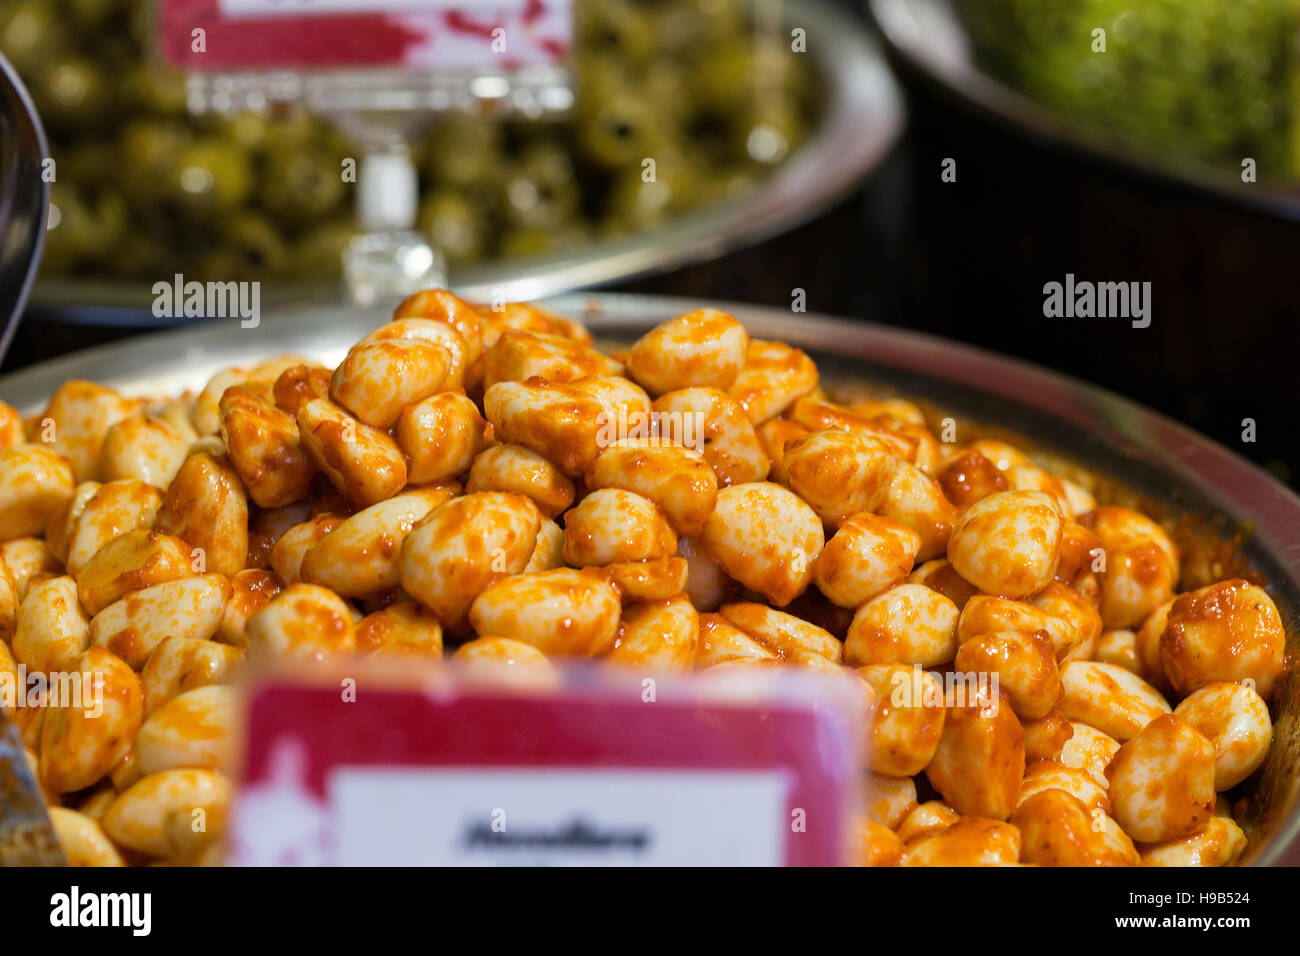 Fresh food produce in silver bowls with price signs at farmers Christmas market, deli - Stock Image